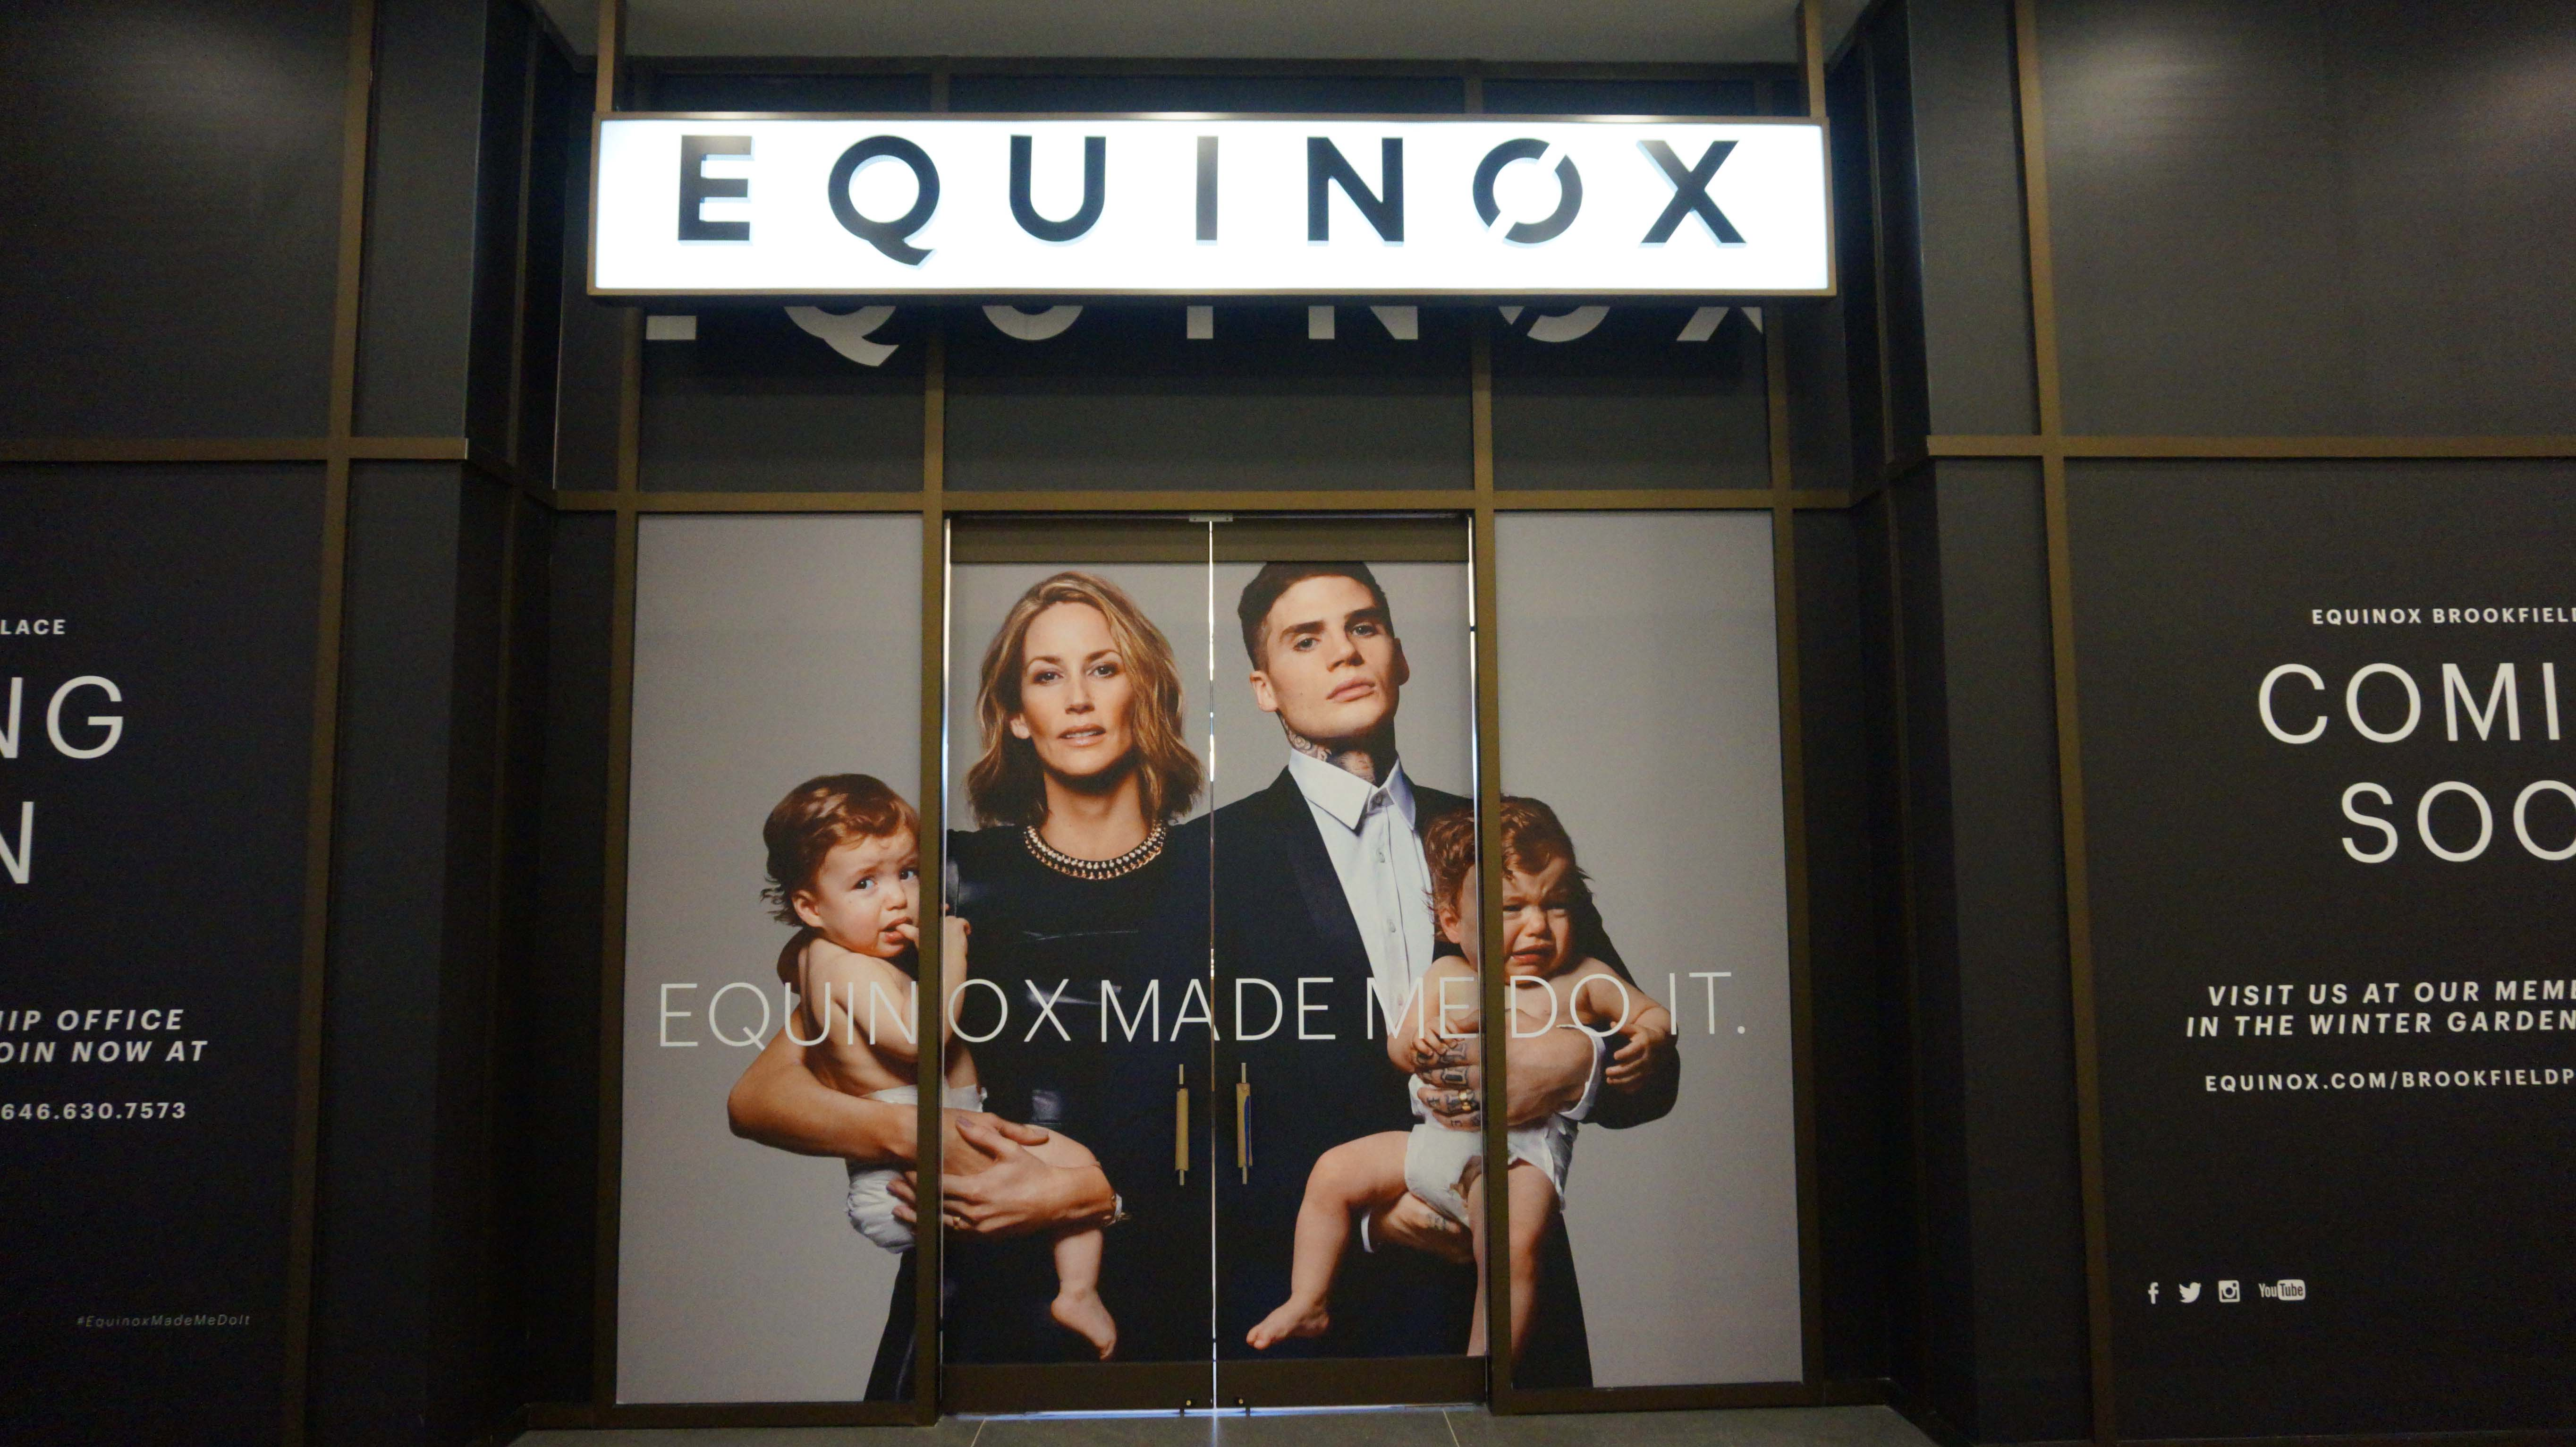 Review equinox gym in brookfield place batterypark tv we inform